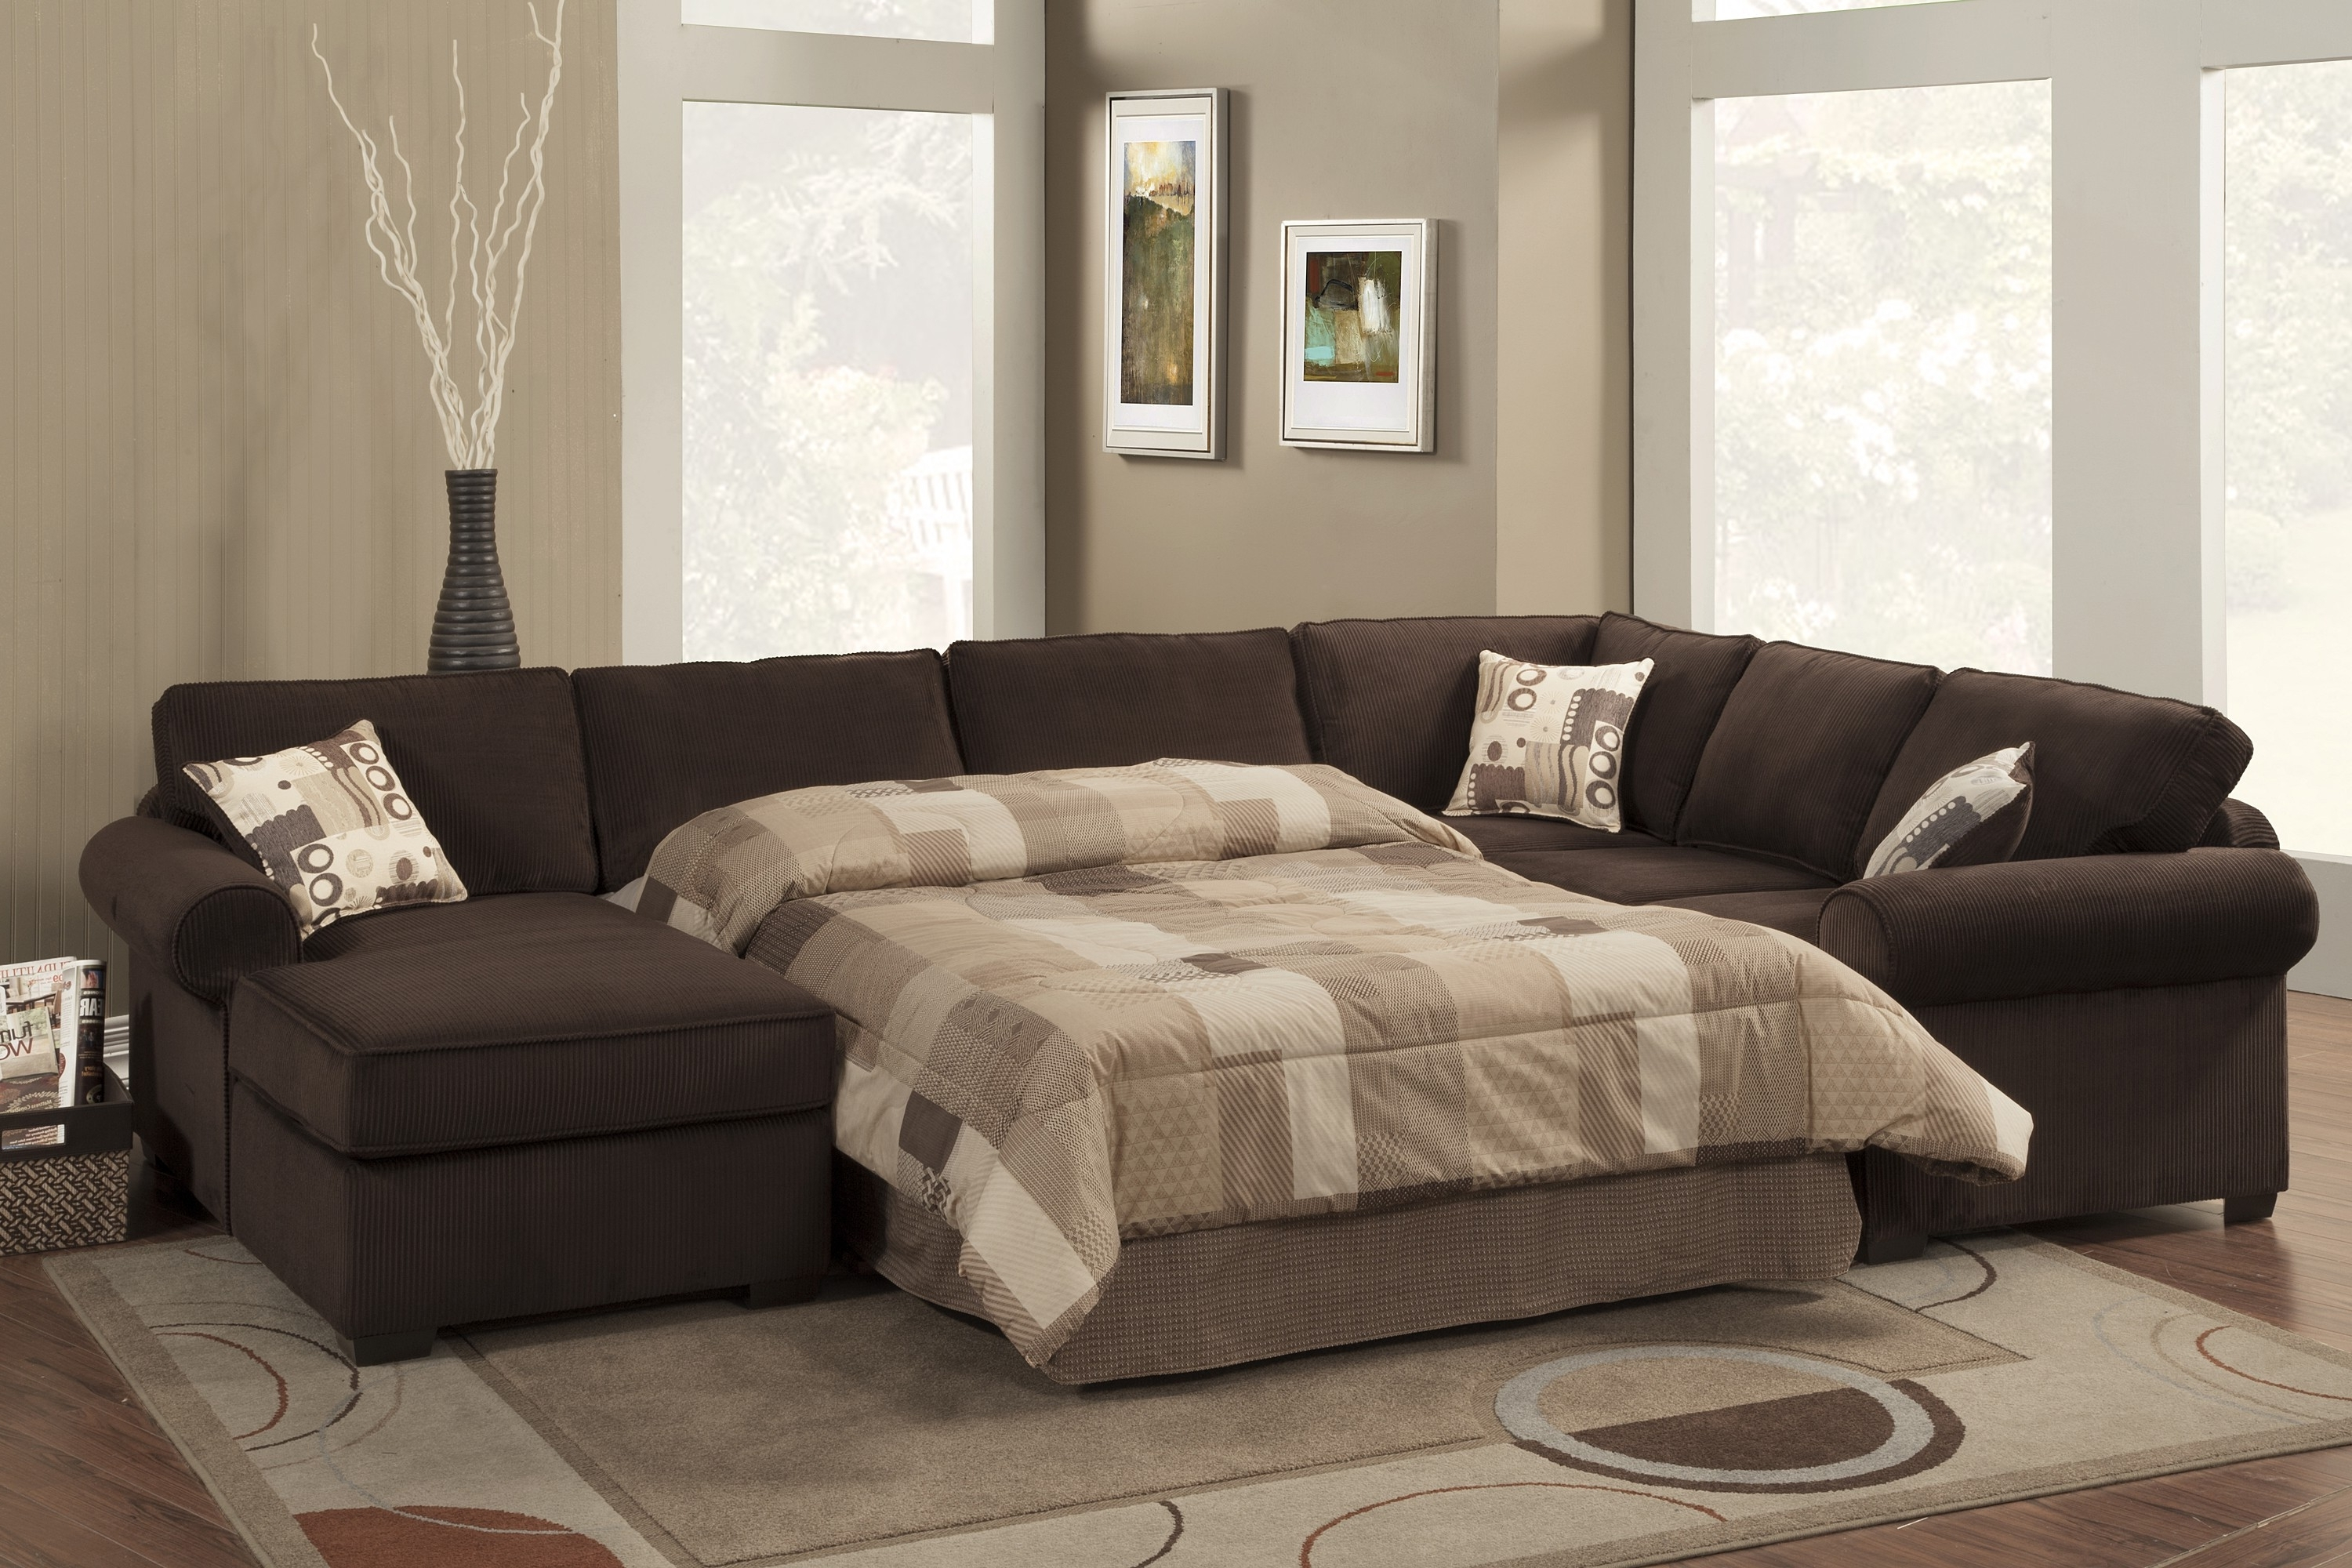 Popular Sofa : Lovely Sectional Sofa Queen Bed Pull Out Couch Quality Beds Throughout Adjustable Sectional Sofas With Queen Bed (View 14 of 20)